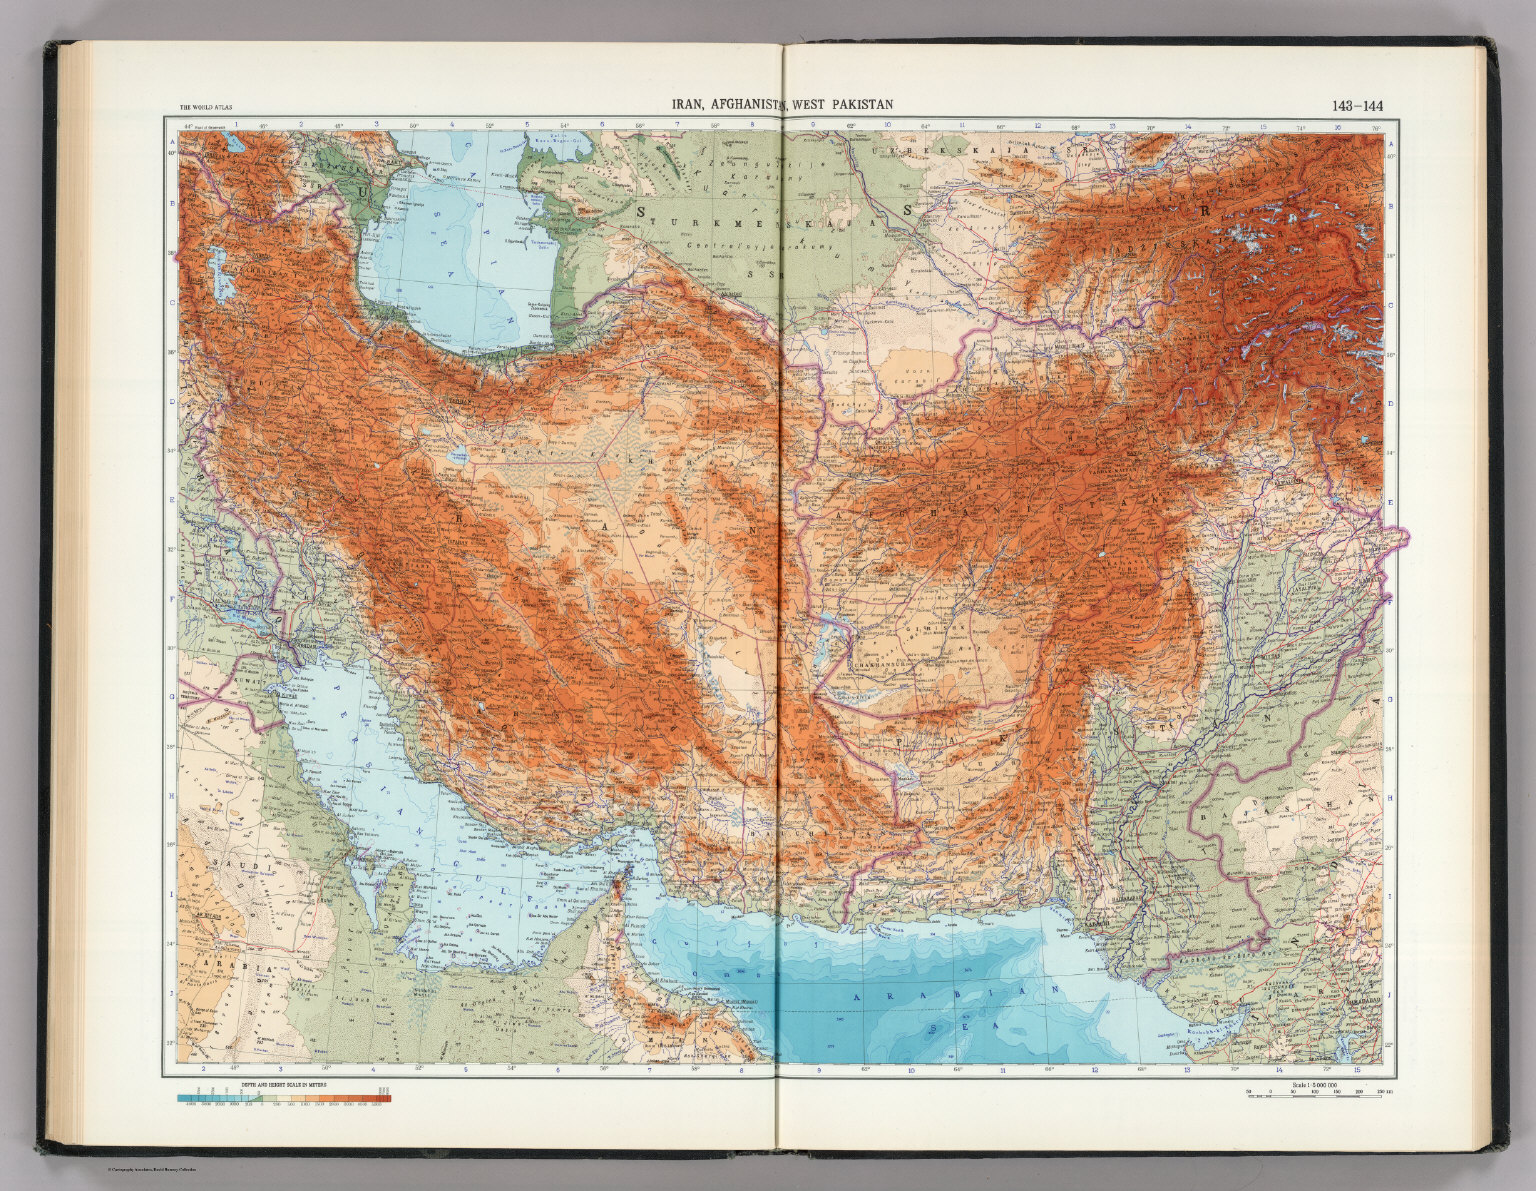 143 144 iran afghanistan west pakistan the world atlas david iran afghanistan west pakistan the world atlas gumiabroncs Image collections